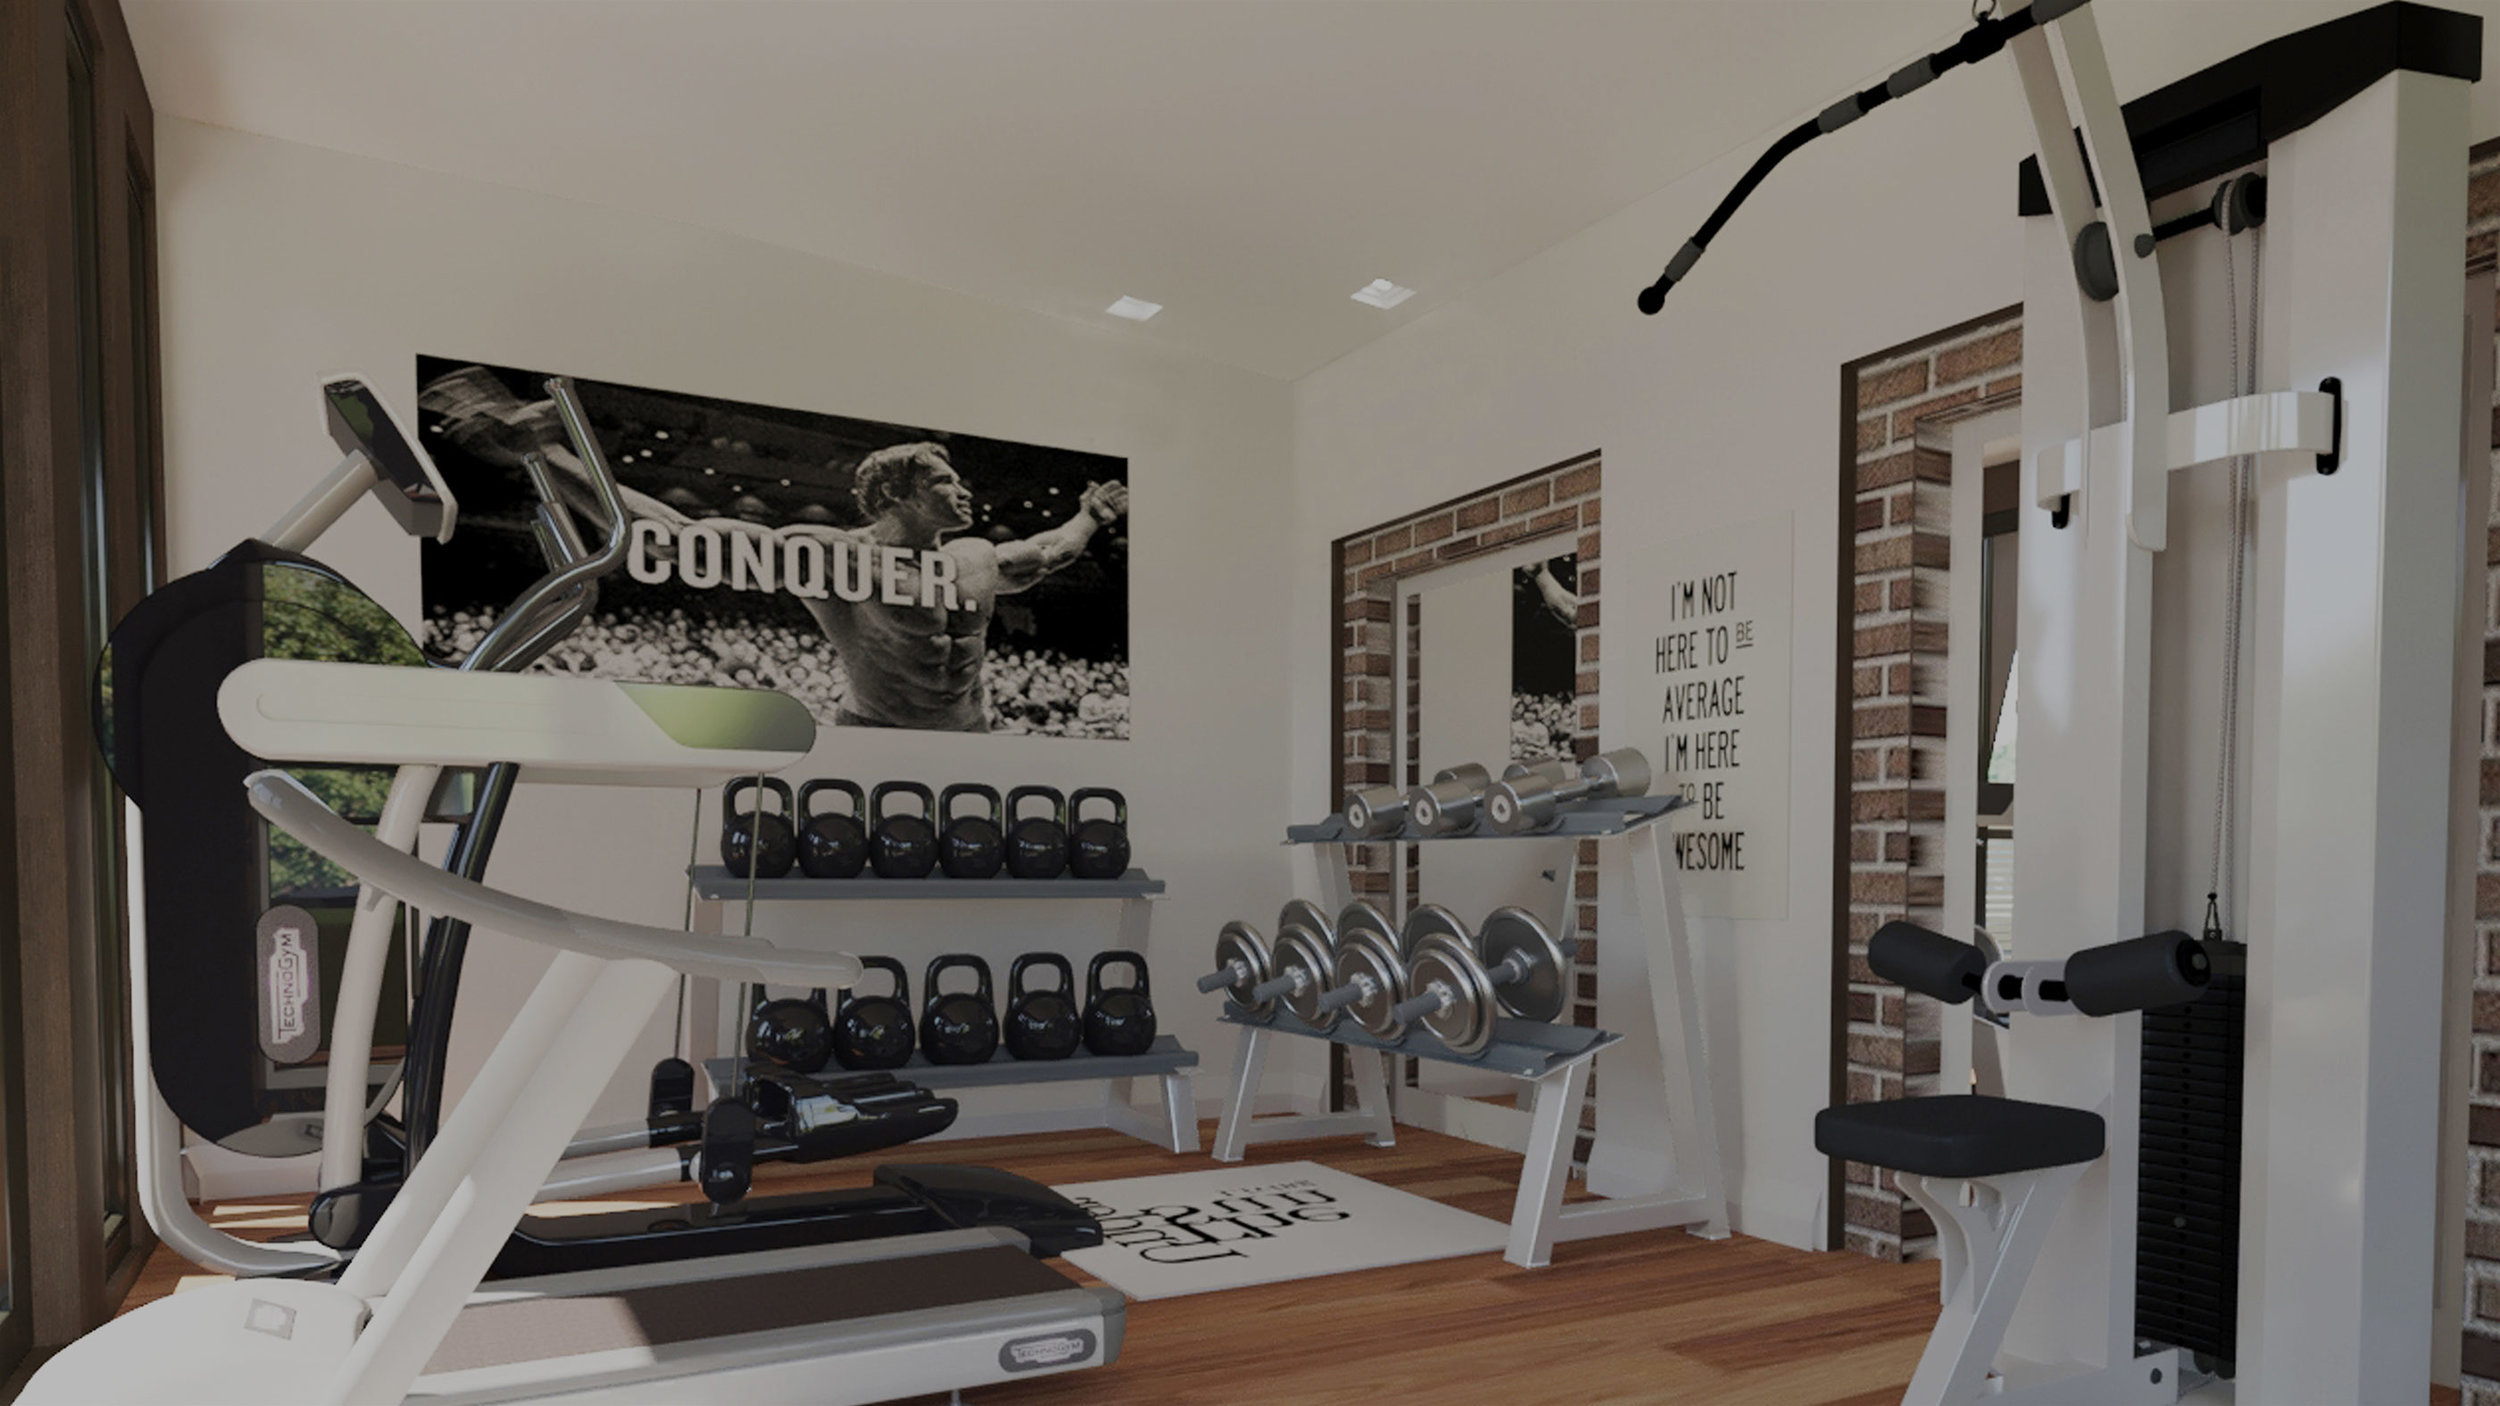 Make Your Garden Work For You   Ideal for personal trainers wanting to side-step gym fees & work from a bespoke studio in their own garden, or for anyone wanting to earn extra income from a stunning holiday-let. Take a look at how an 'Under The Sun' Studio can work for you   View Gallery